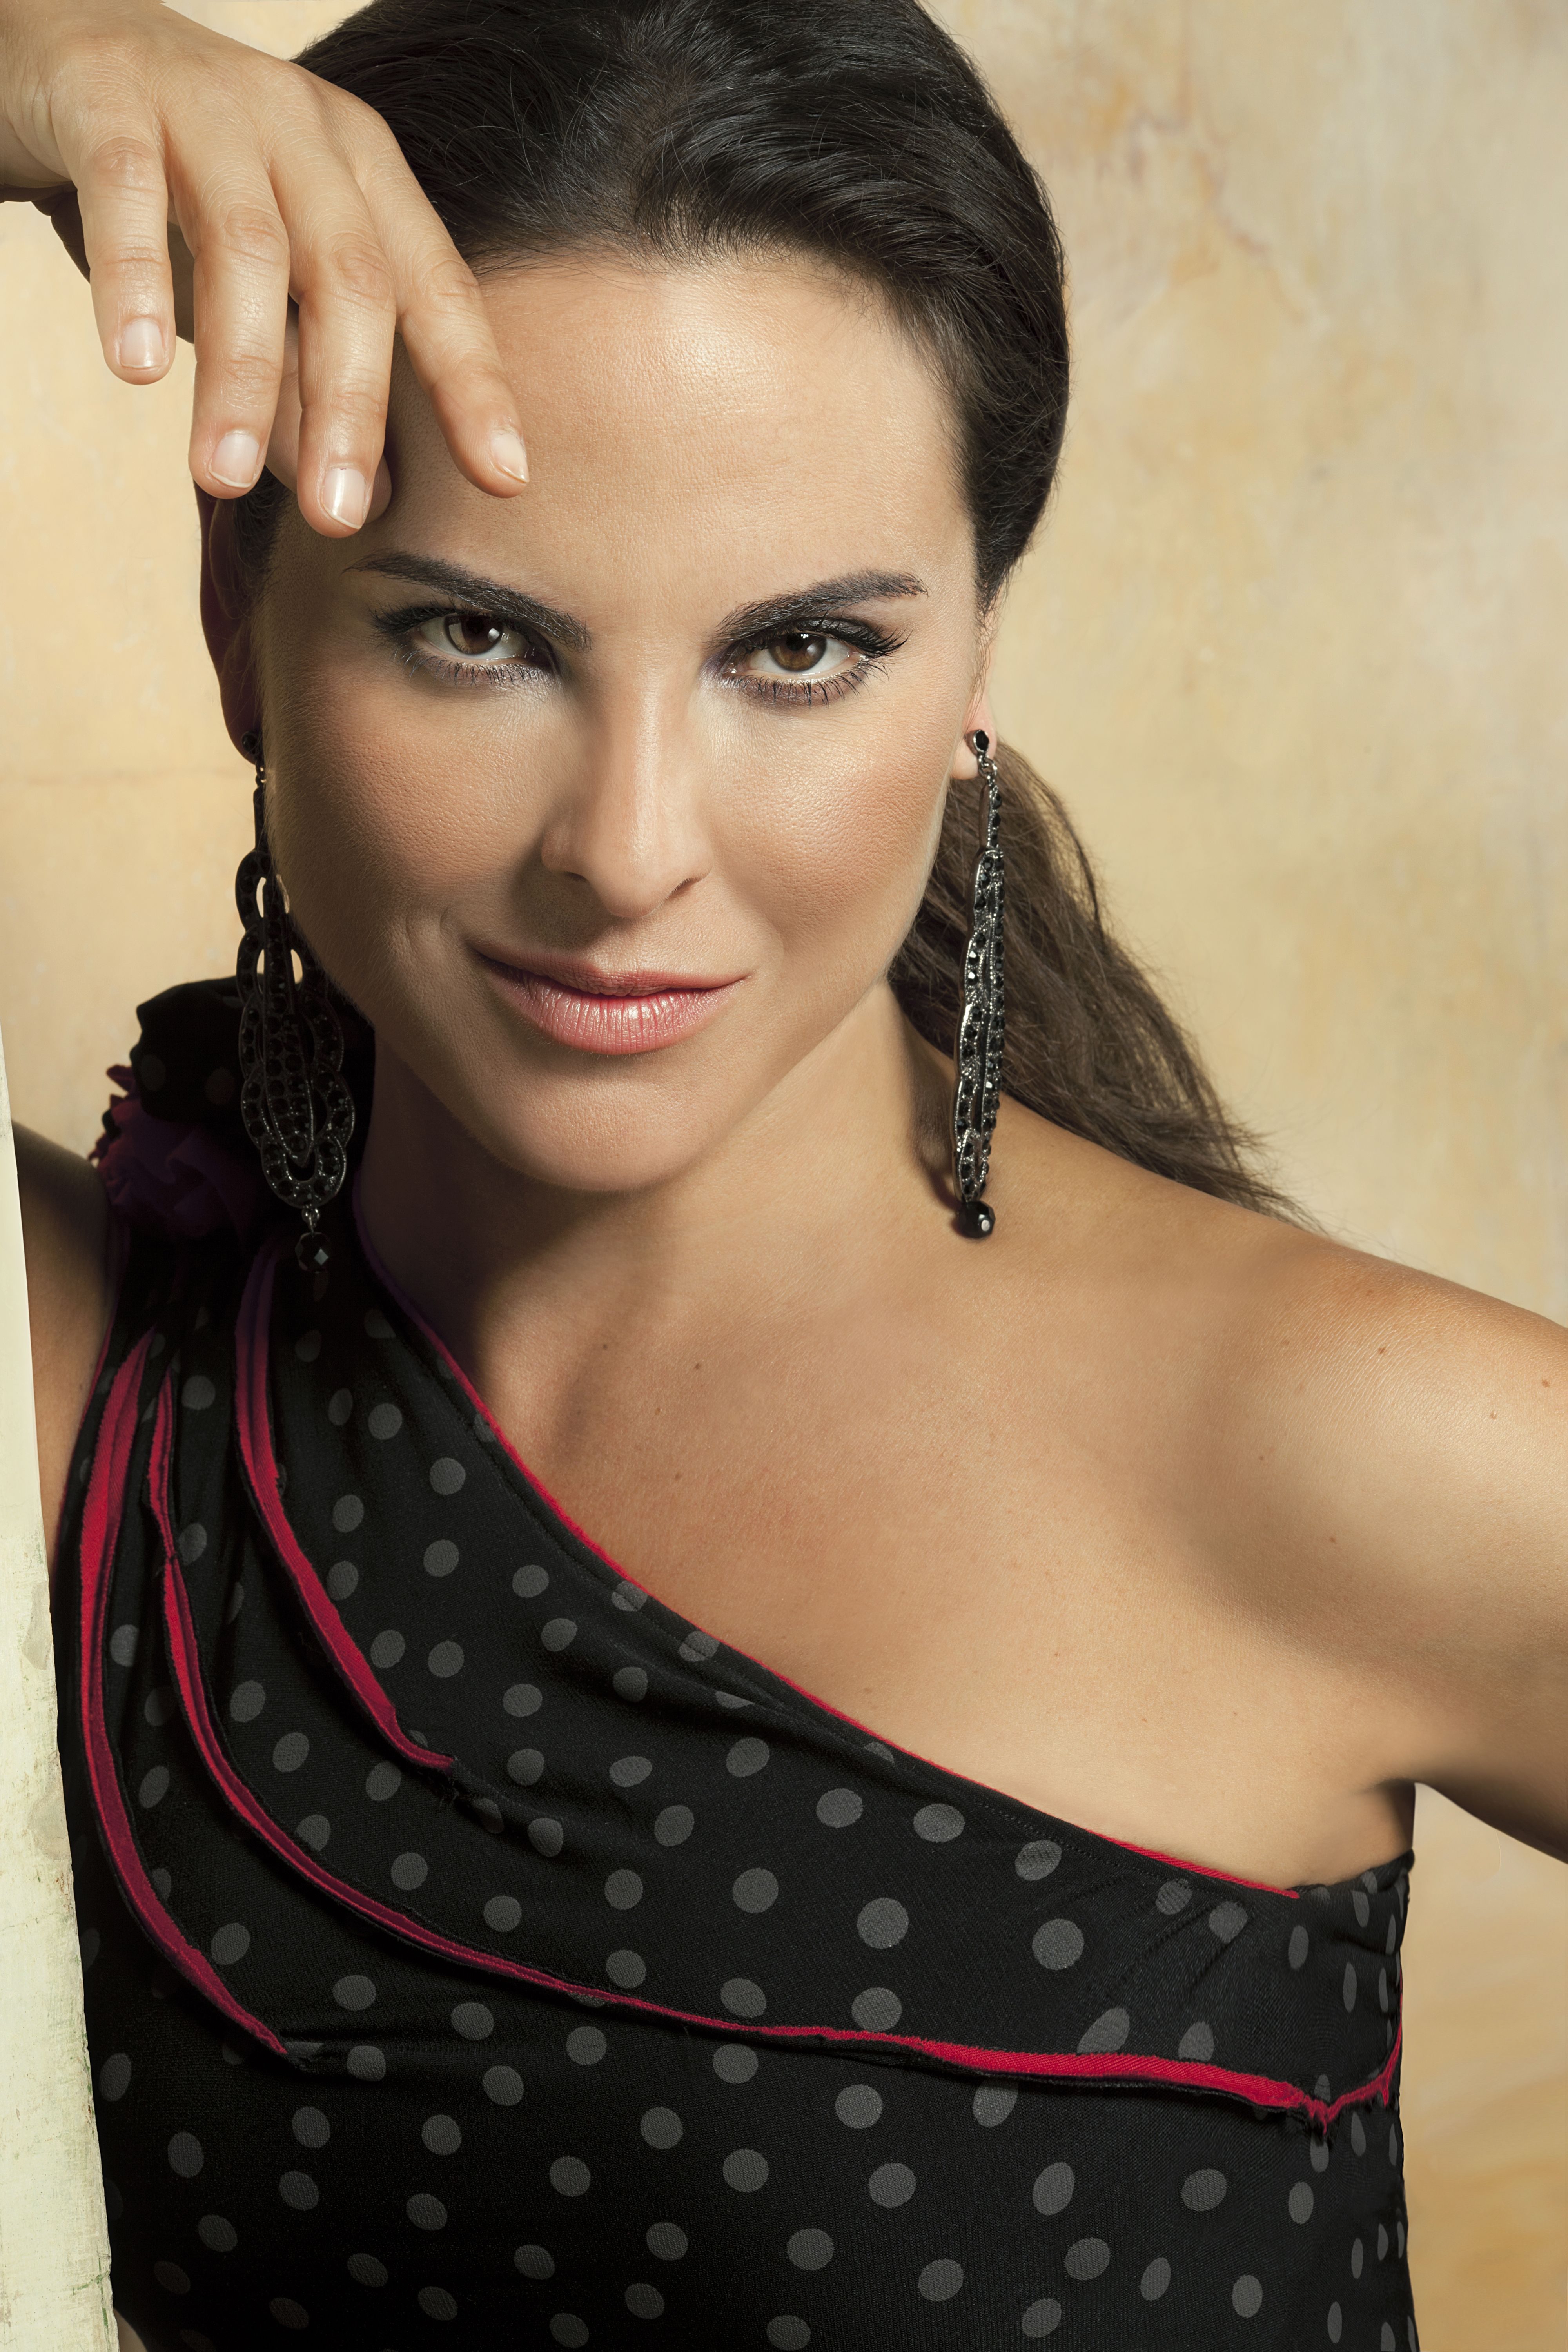 http://telenovelasdelmundo.files.wordpress.com/2012/02/kate-del-castillo-hq.jpg